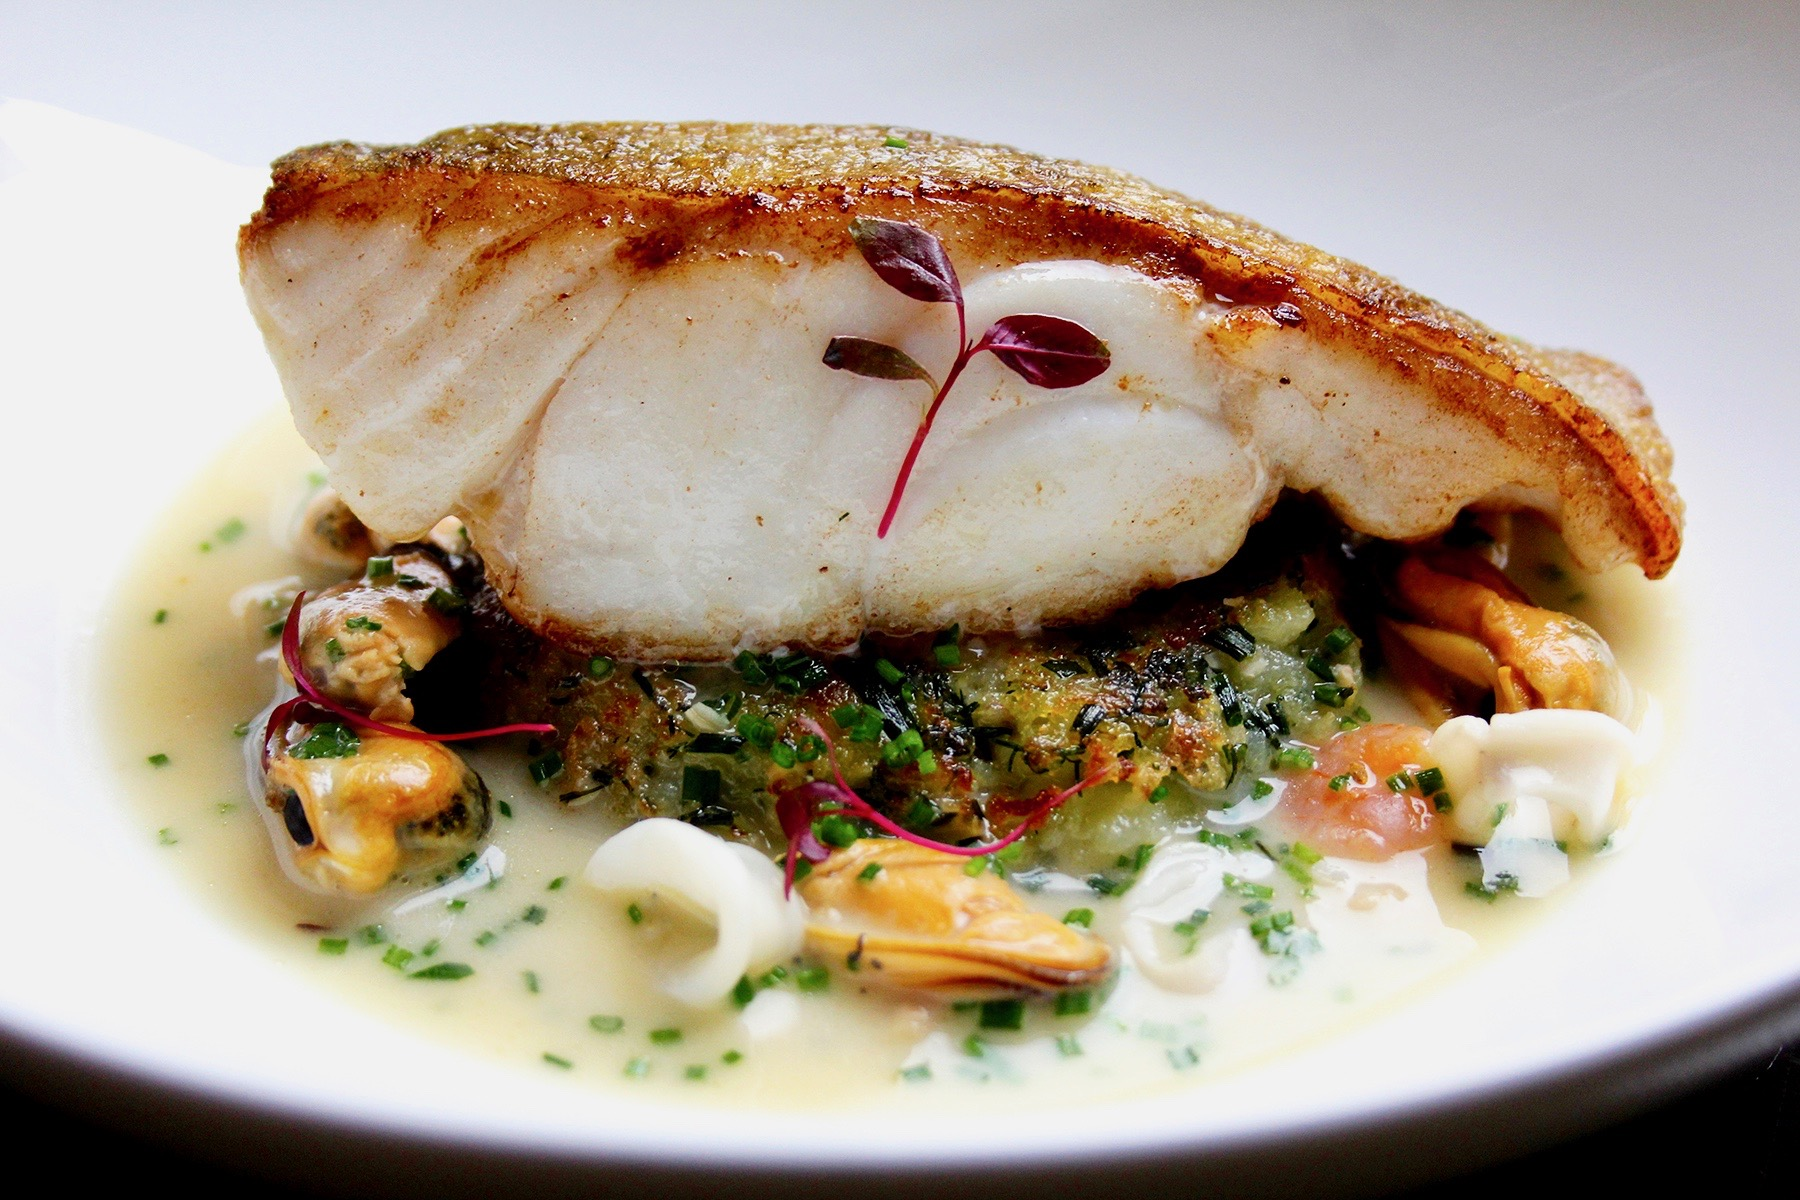 Andaz-London-Liverpool-Street-George-Special-Fish-Close-Up-Detail.jpg